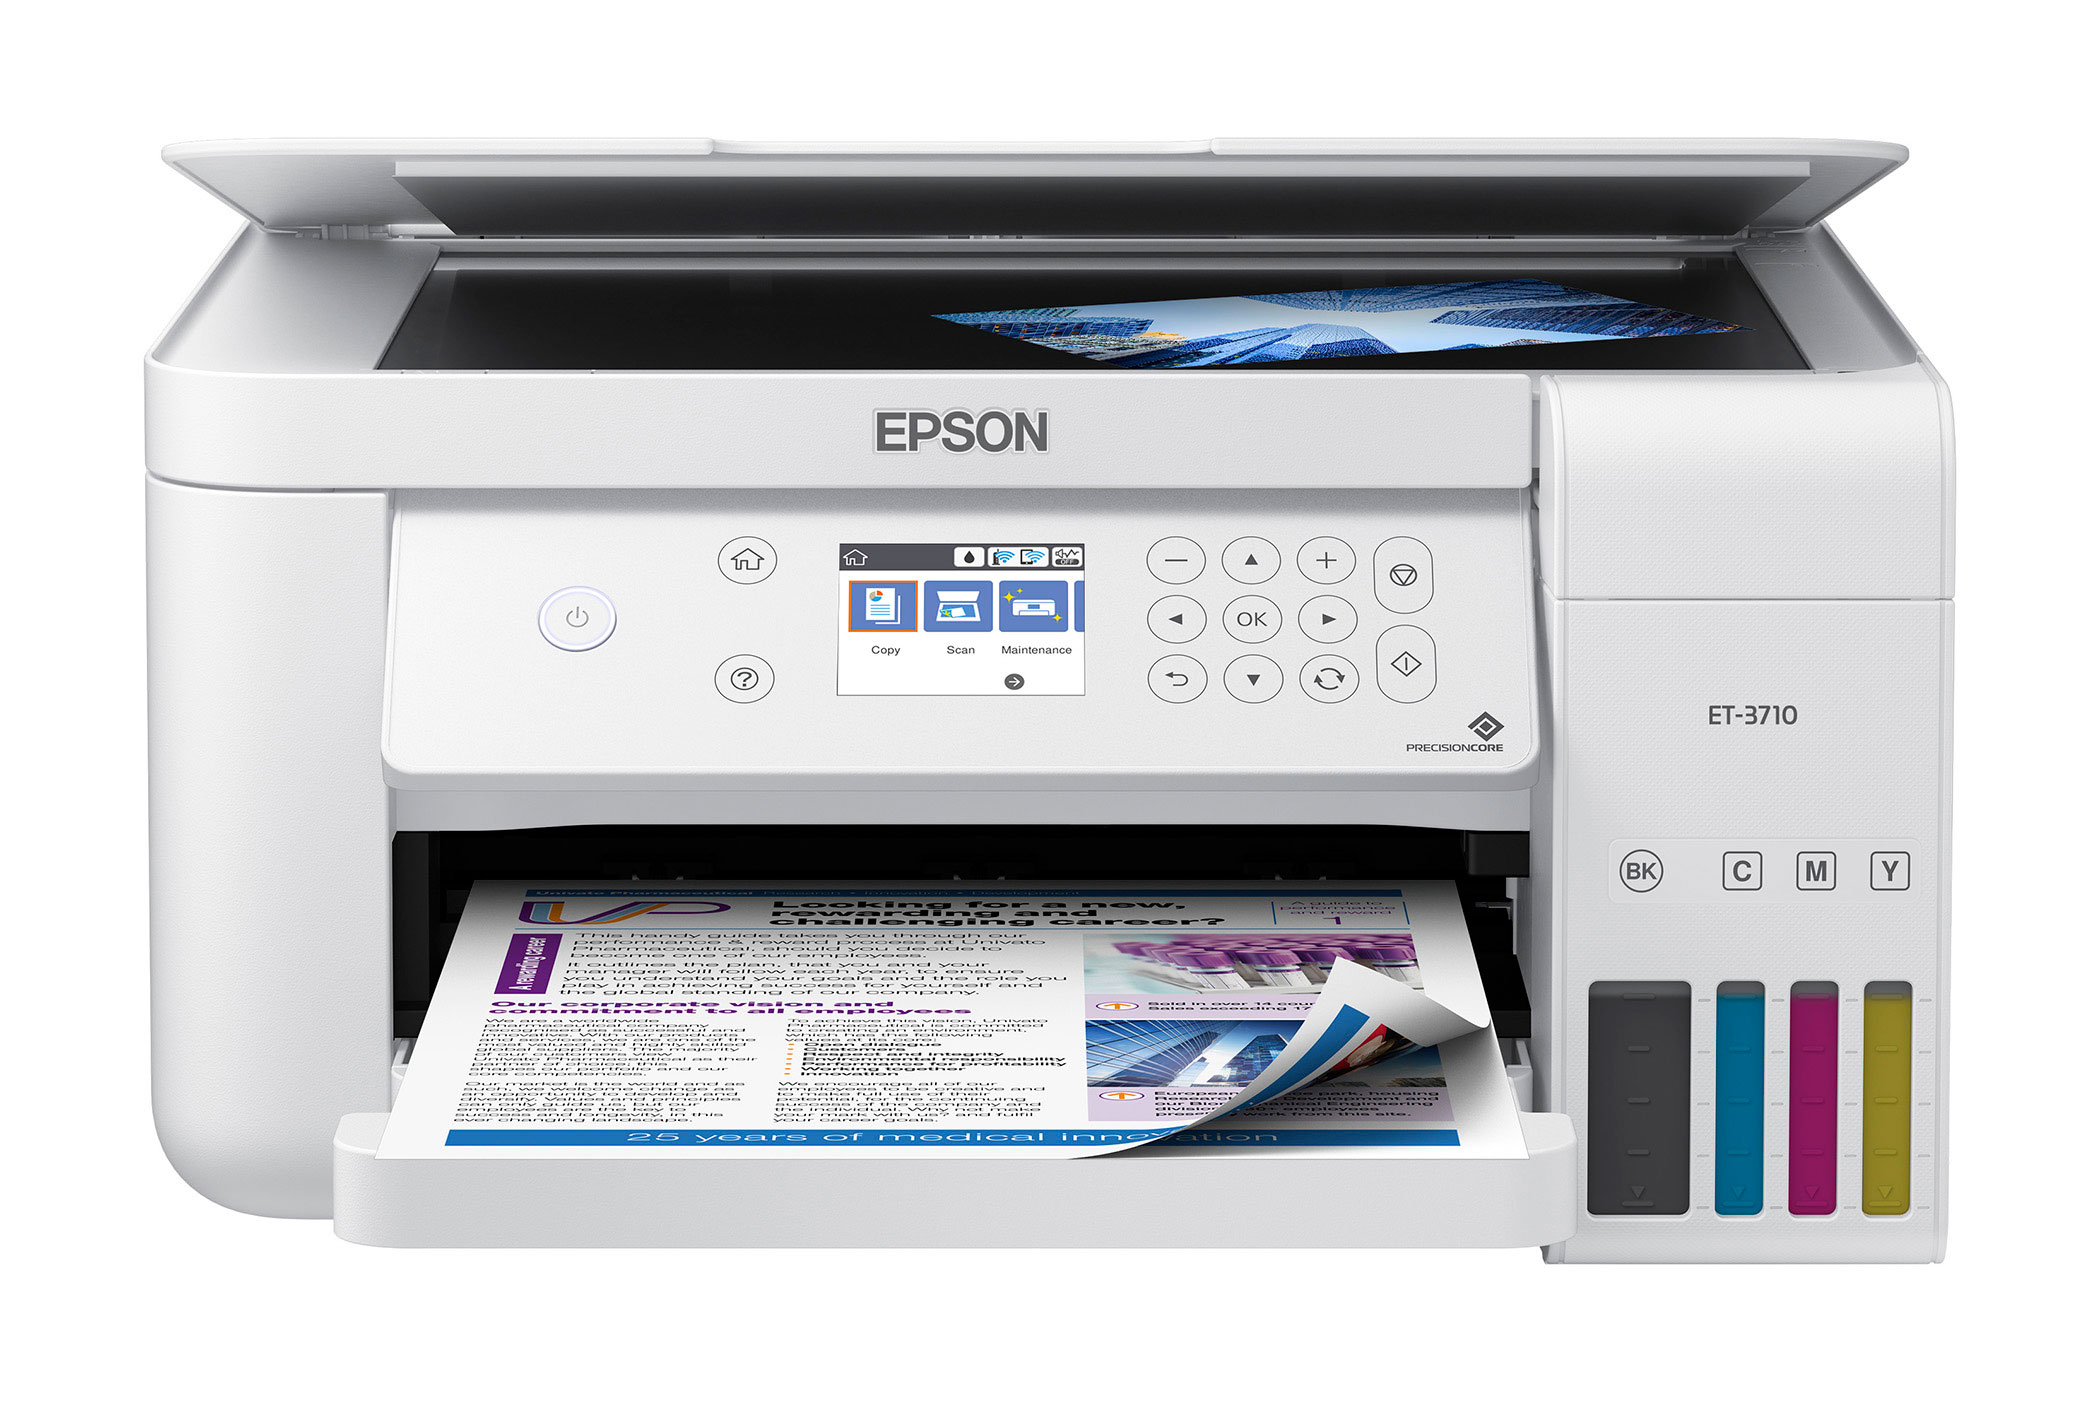 The Epson EcoTank ET-3710 All-in-One Supertank Printer offers enhanced features and voice-activated printing.